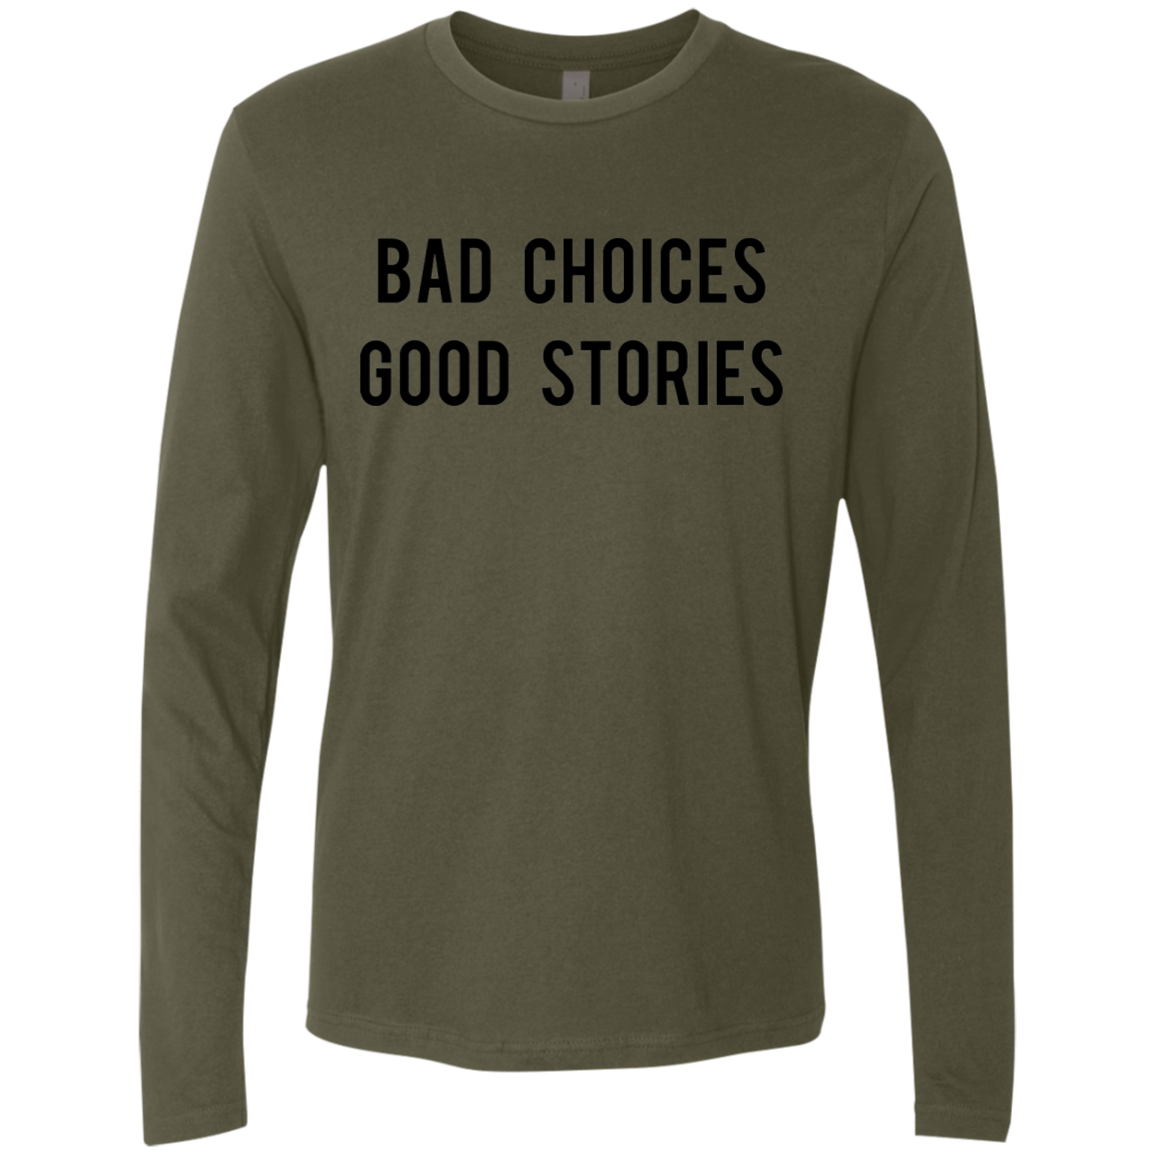 Bad Choices Good Stories Men's Long Sleeve Tee - Trendy Tees